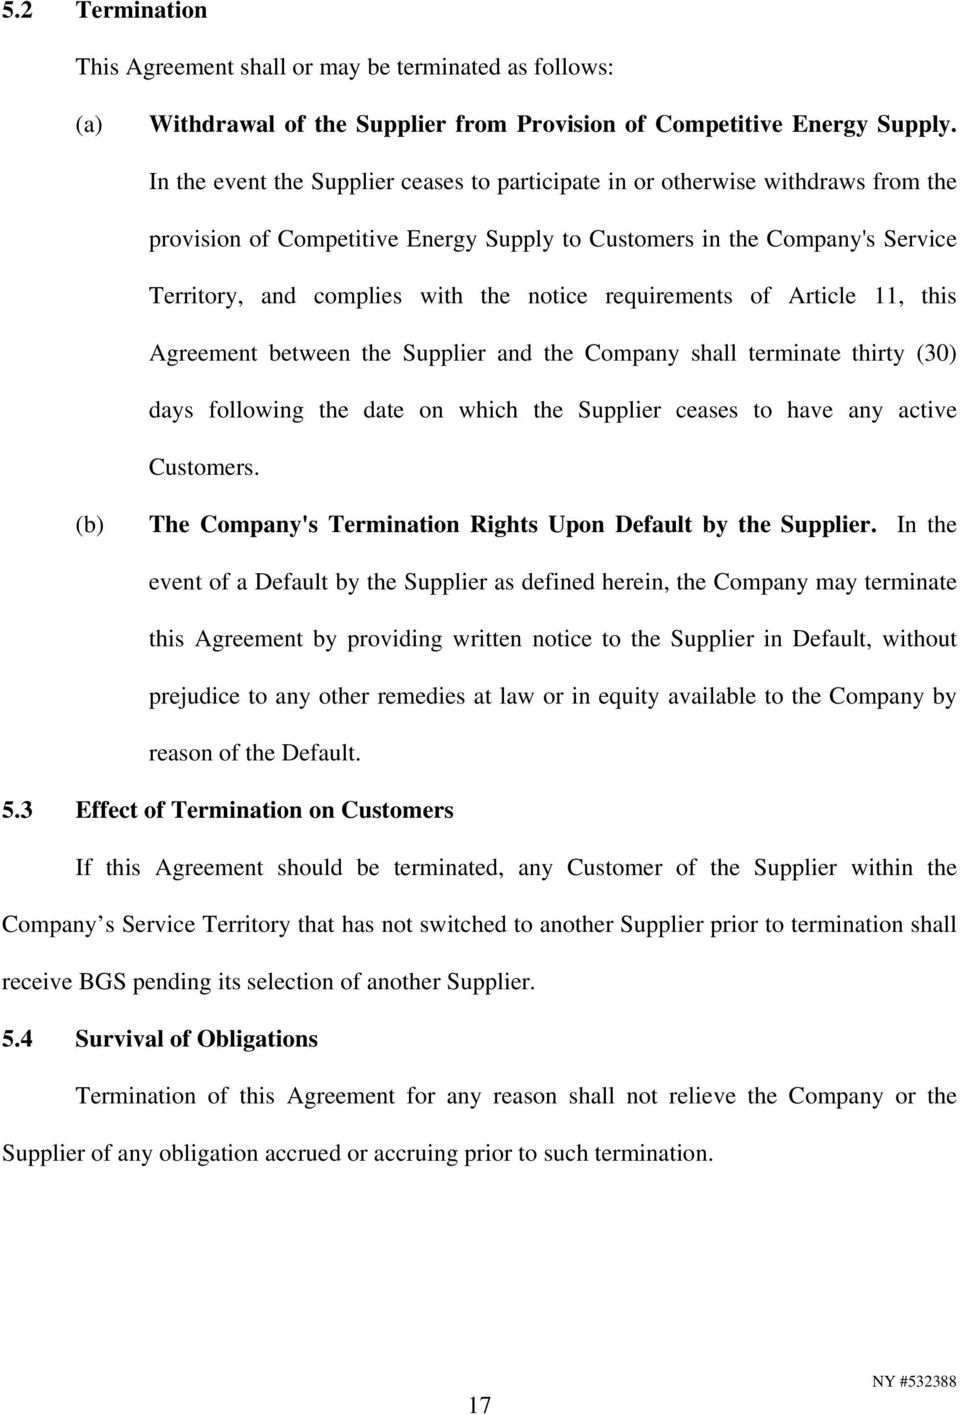 requirements of Article 11, this Agreement between the Supplier and the Company shall terminate thirty (30) days following the date on which the Supplier ceases to have any active Customers.